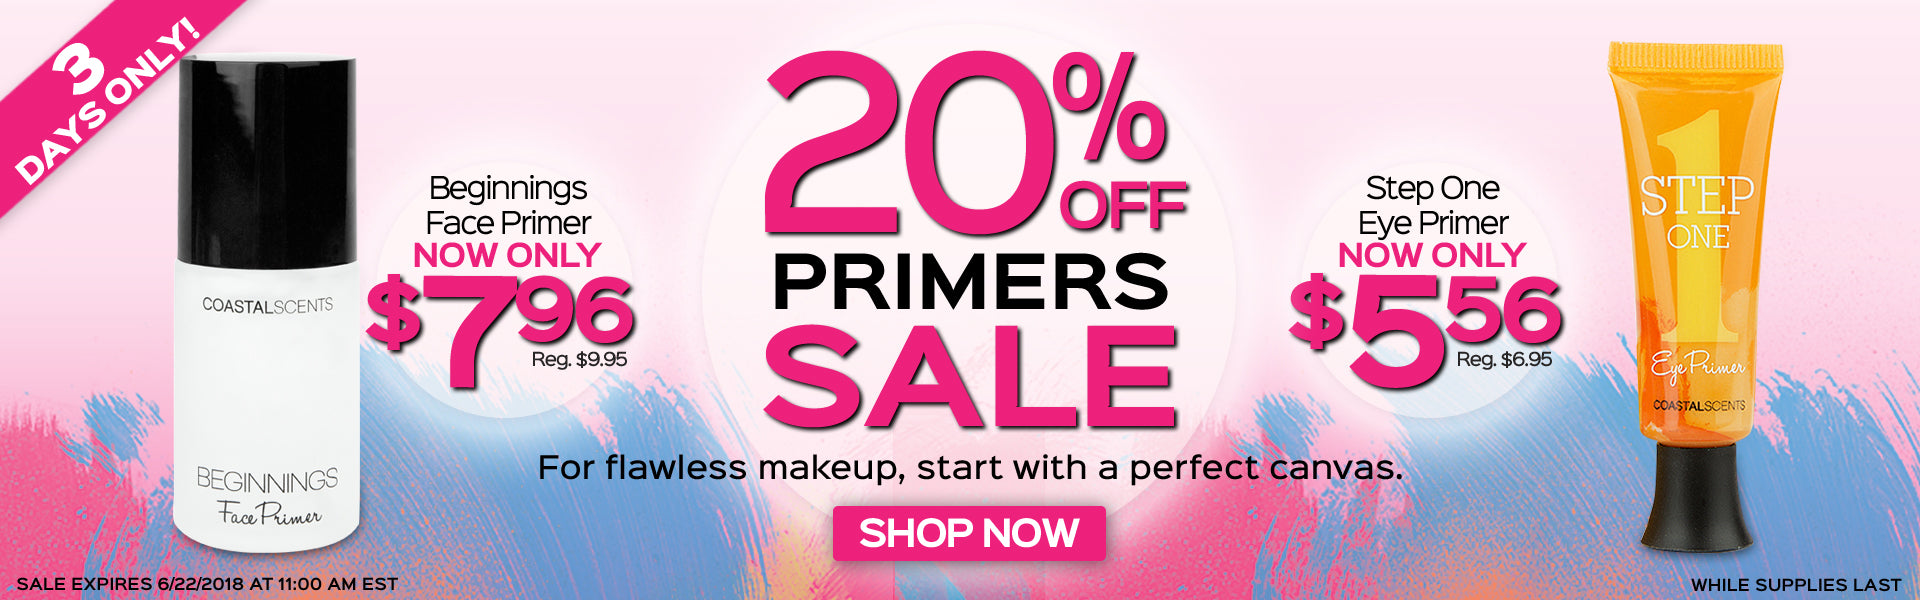 20% Off Primers Sale